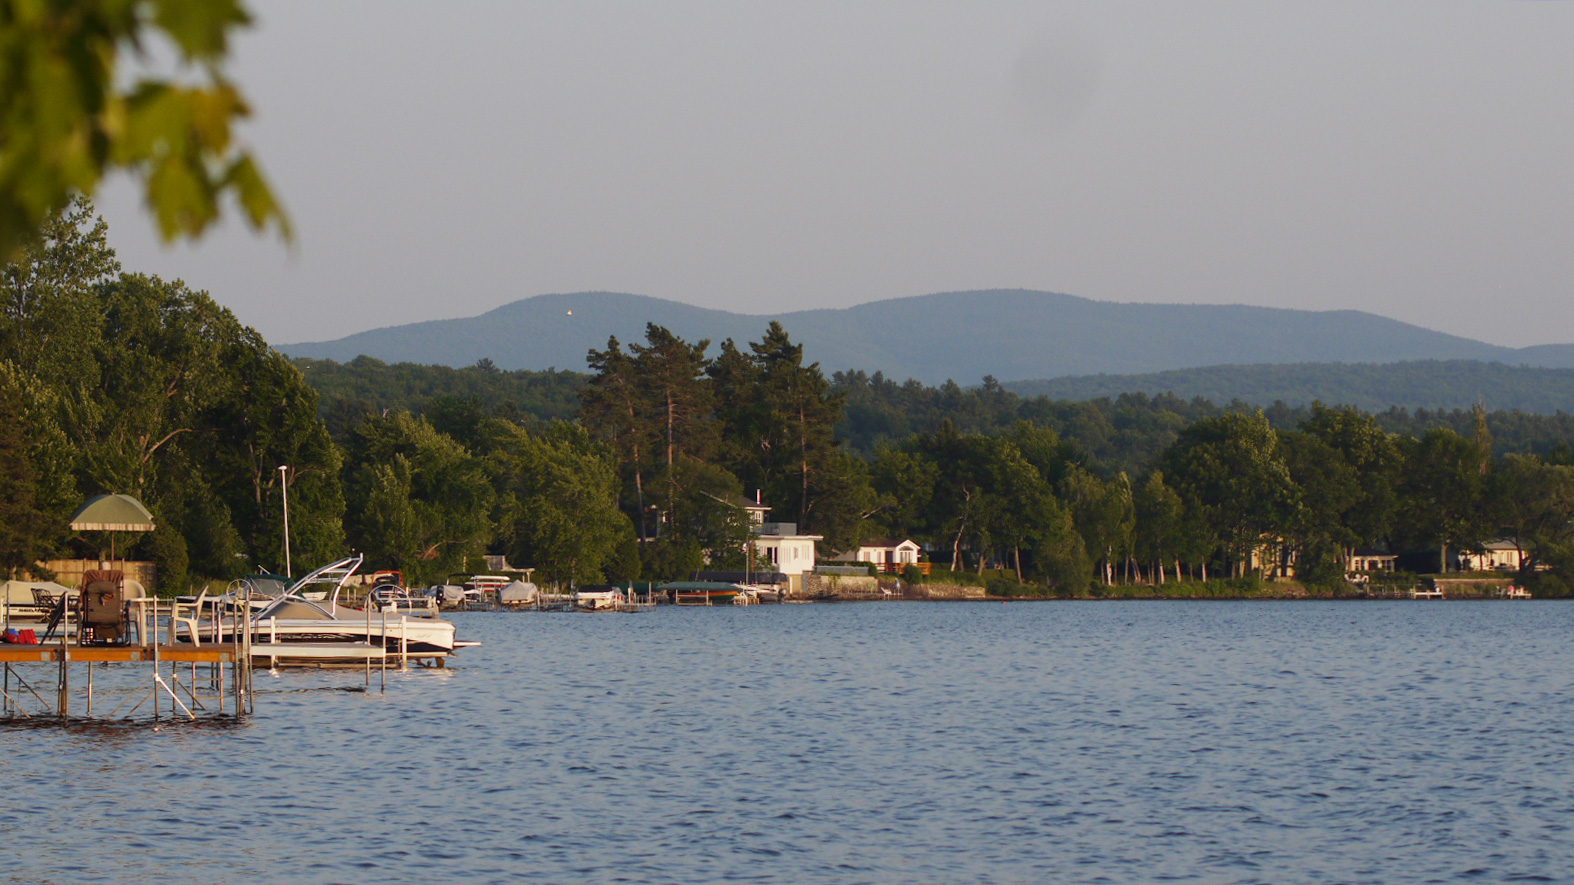 Town of Brome Lake